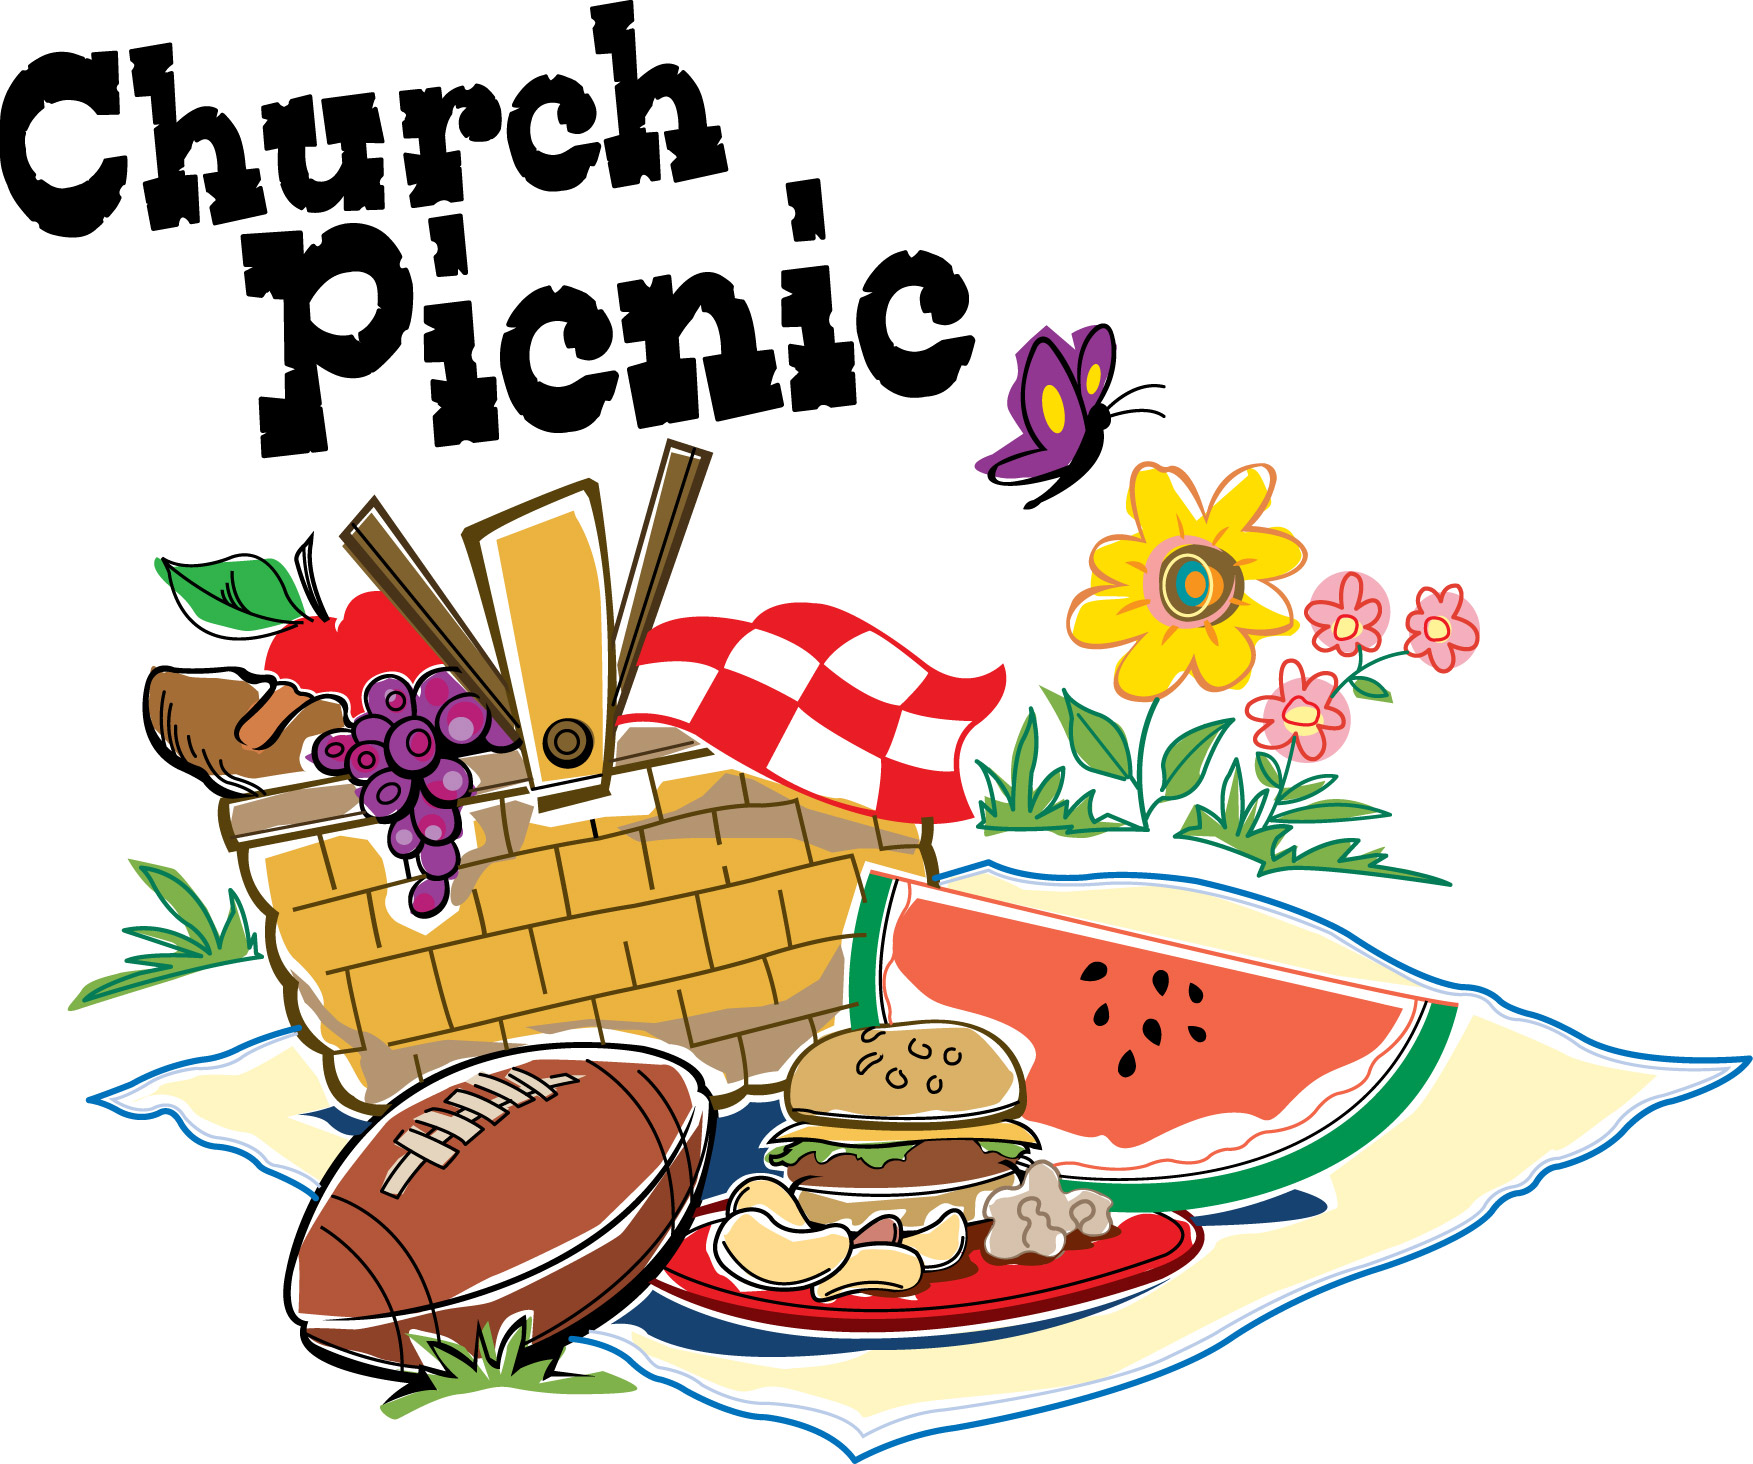 hight resolution of summer church cliparts 2464037 license personal use